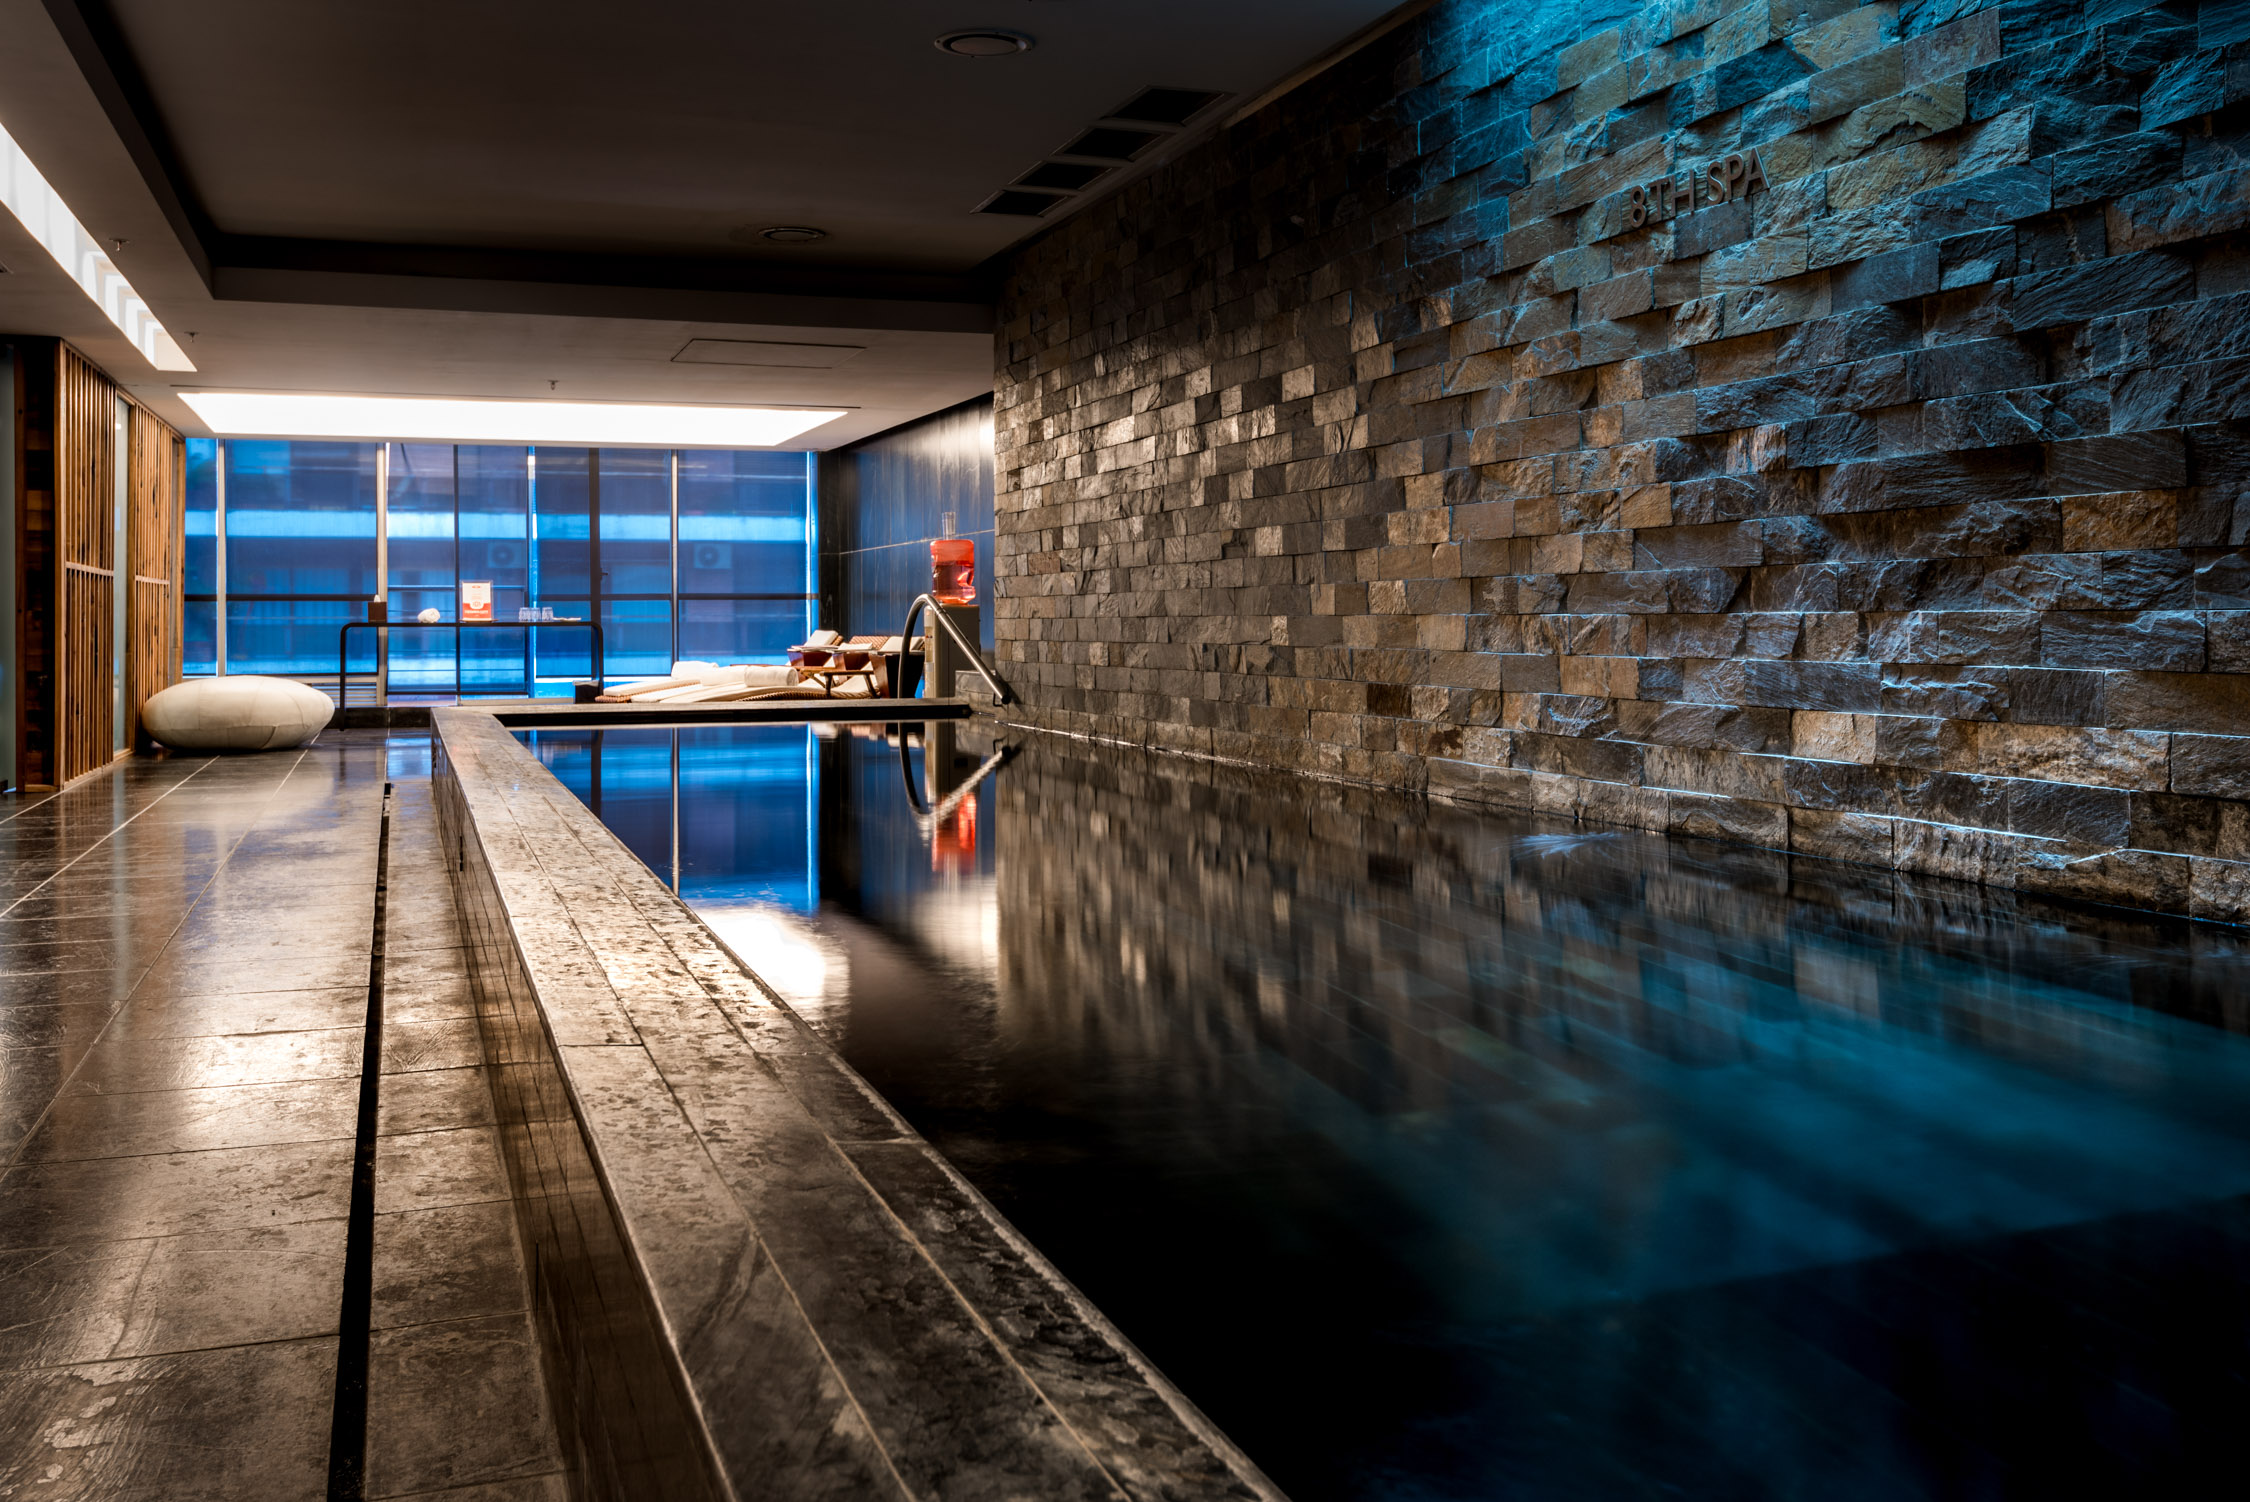 The Spa area at The Mio Hotel in Buenos Aires